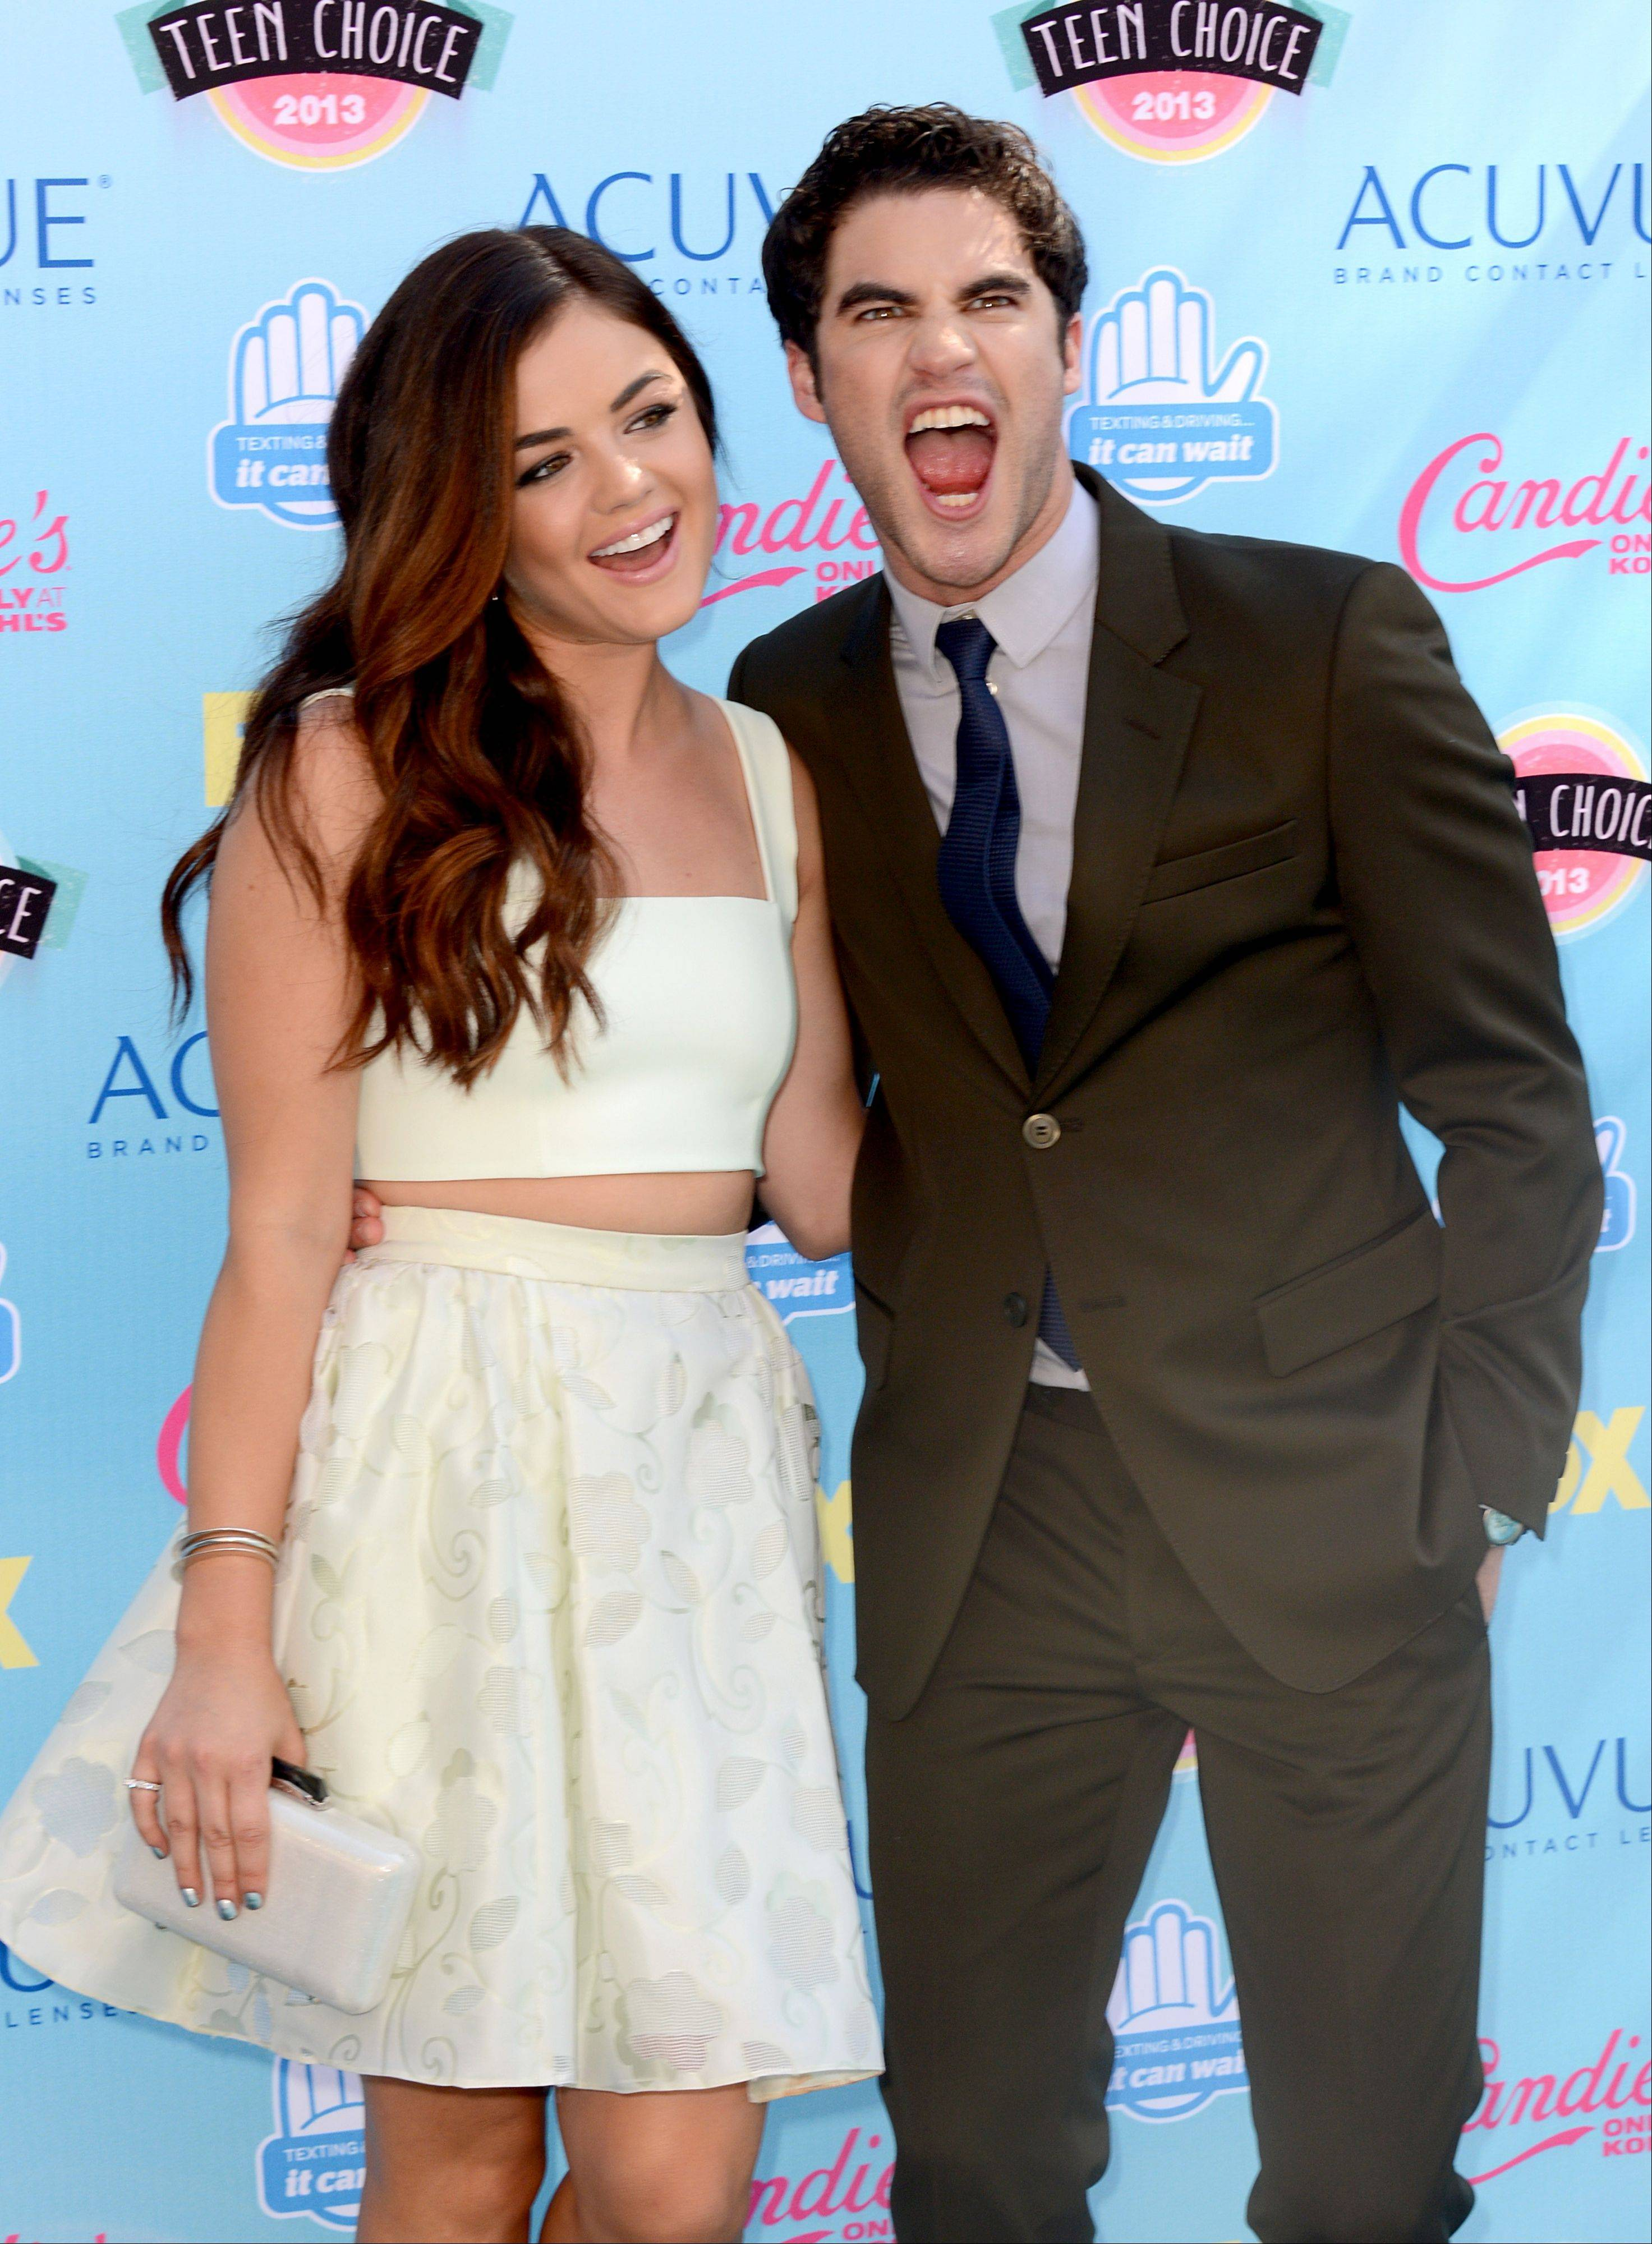 Lucy Hale, left, and Darren Criss have a little fun along the press line at the Teen Choice Awards.